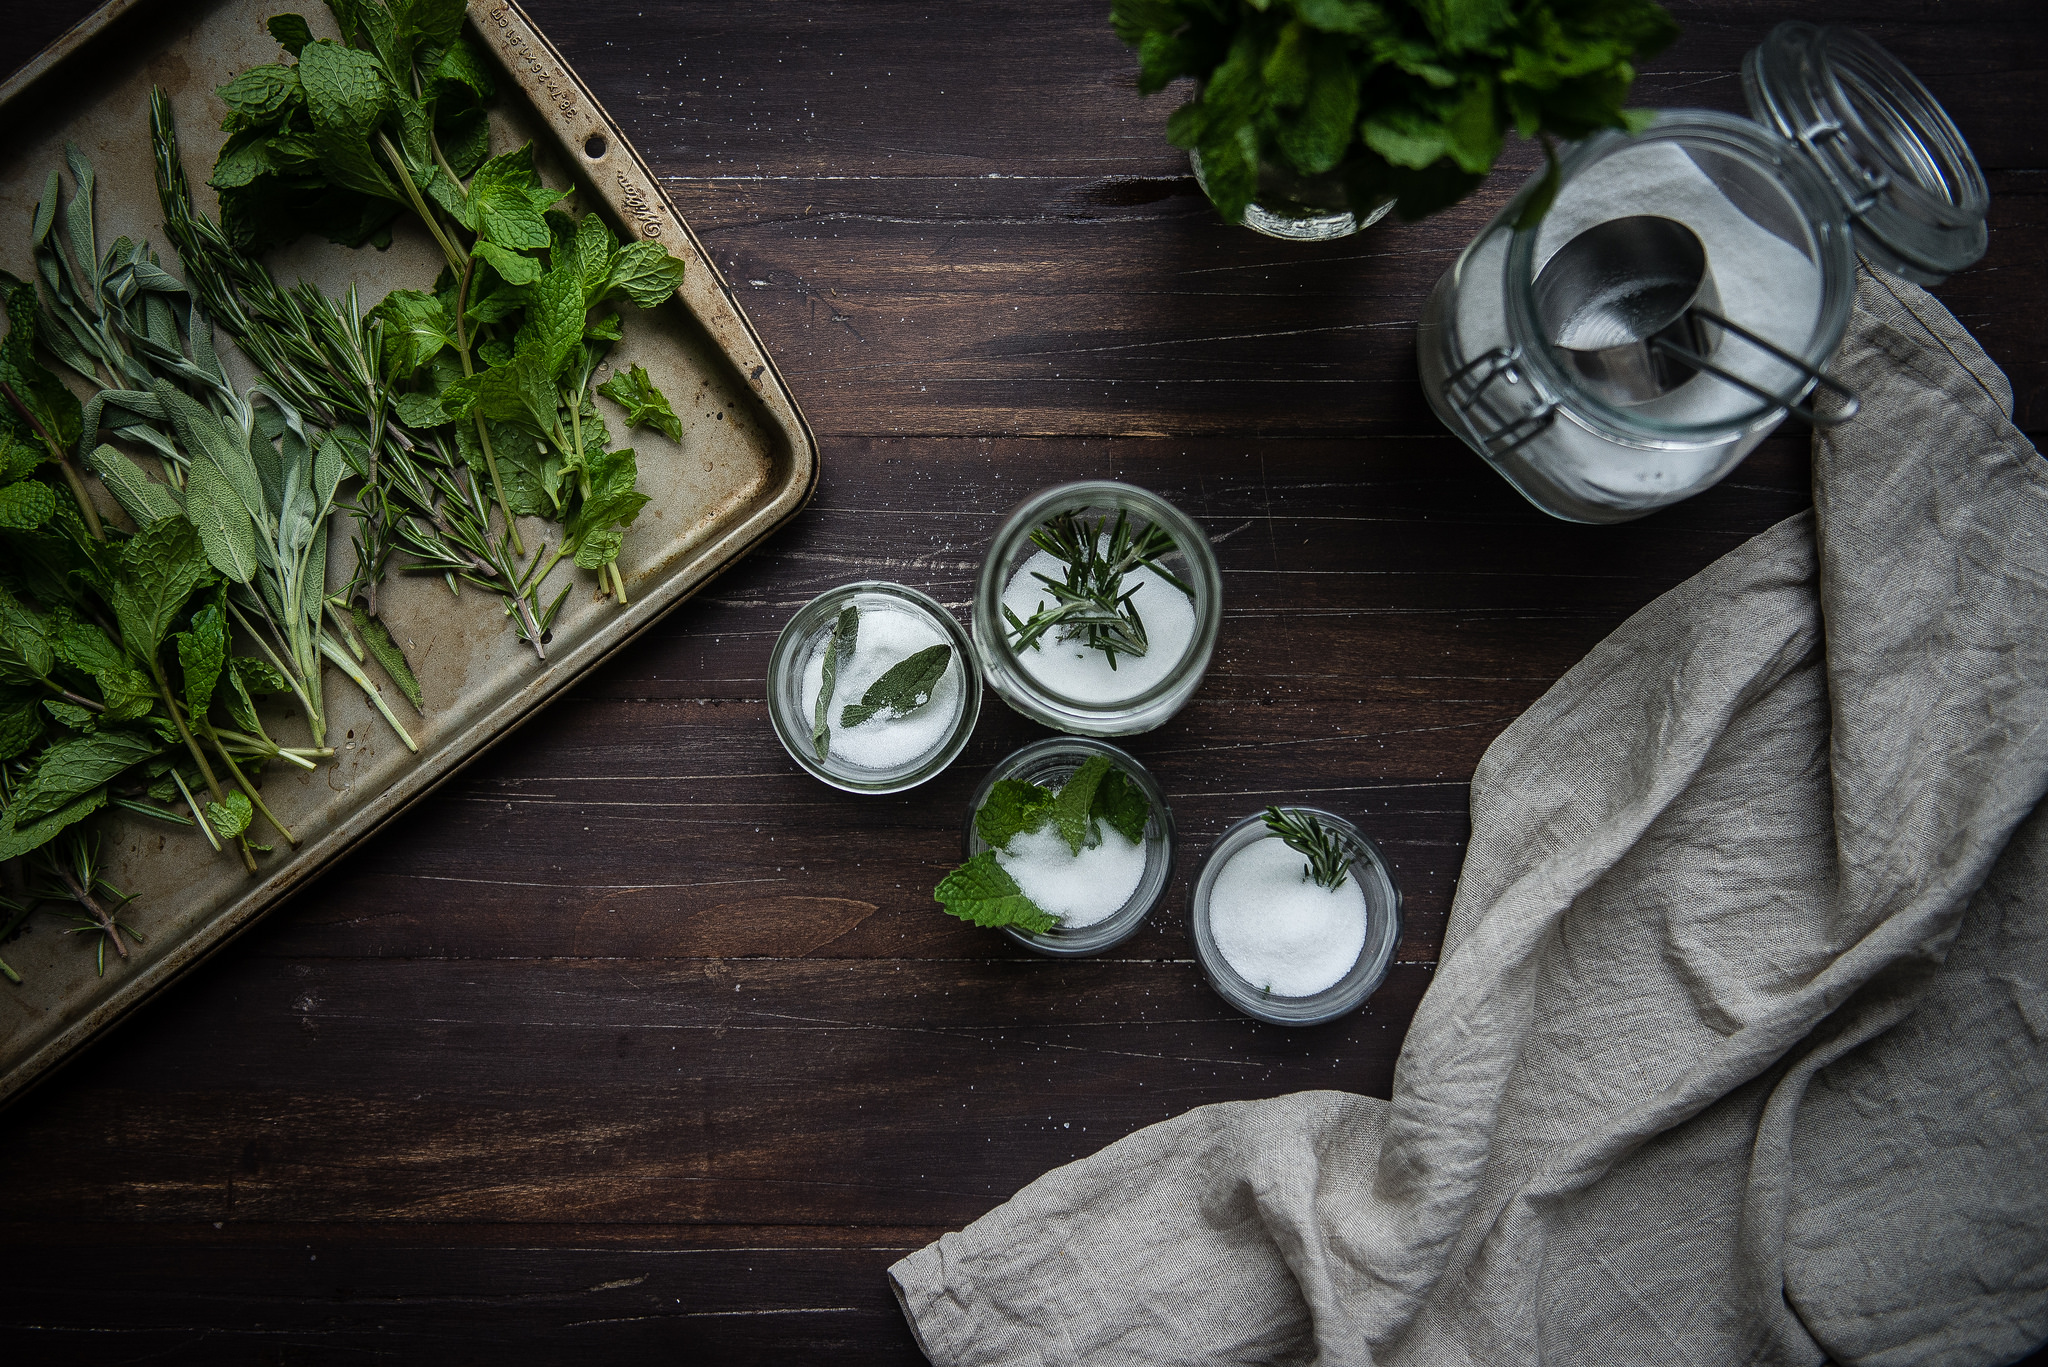 Making your own homemade flavored sugar using herbs